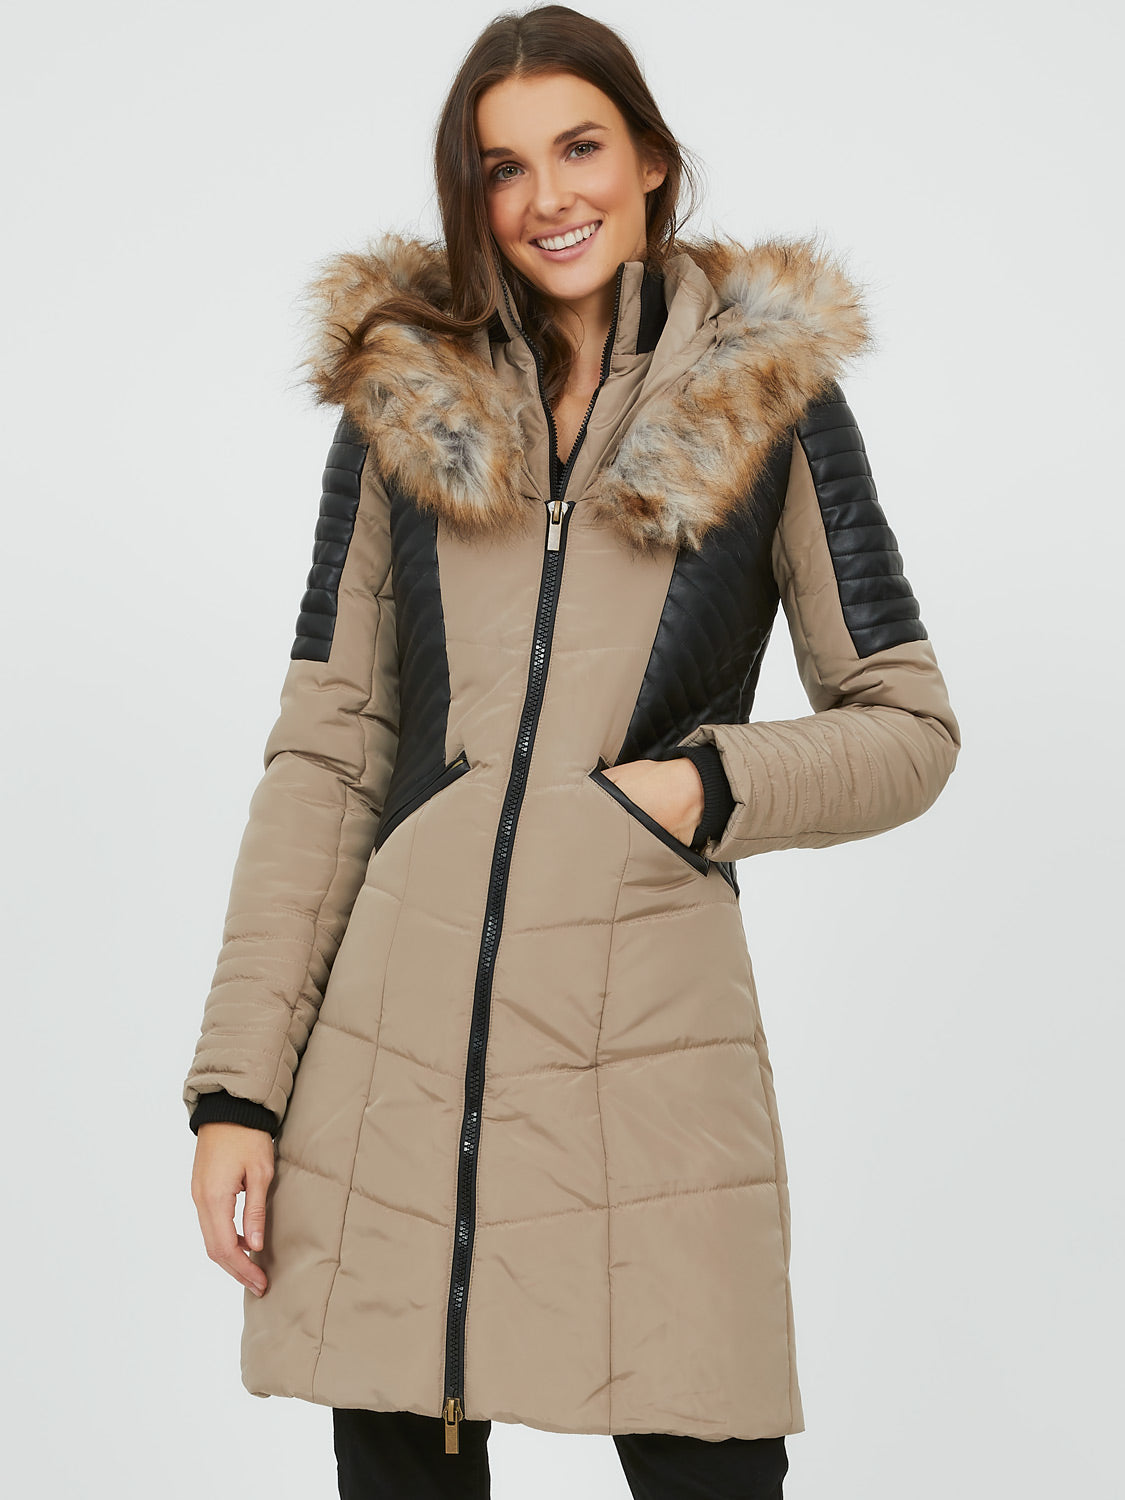 Faux Leather Puffer Jacket